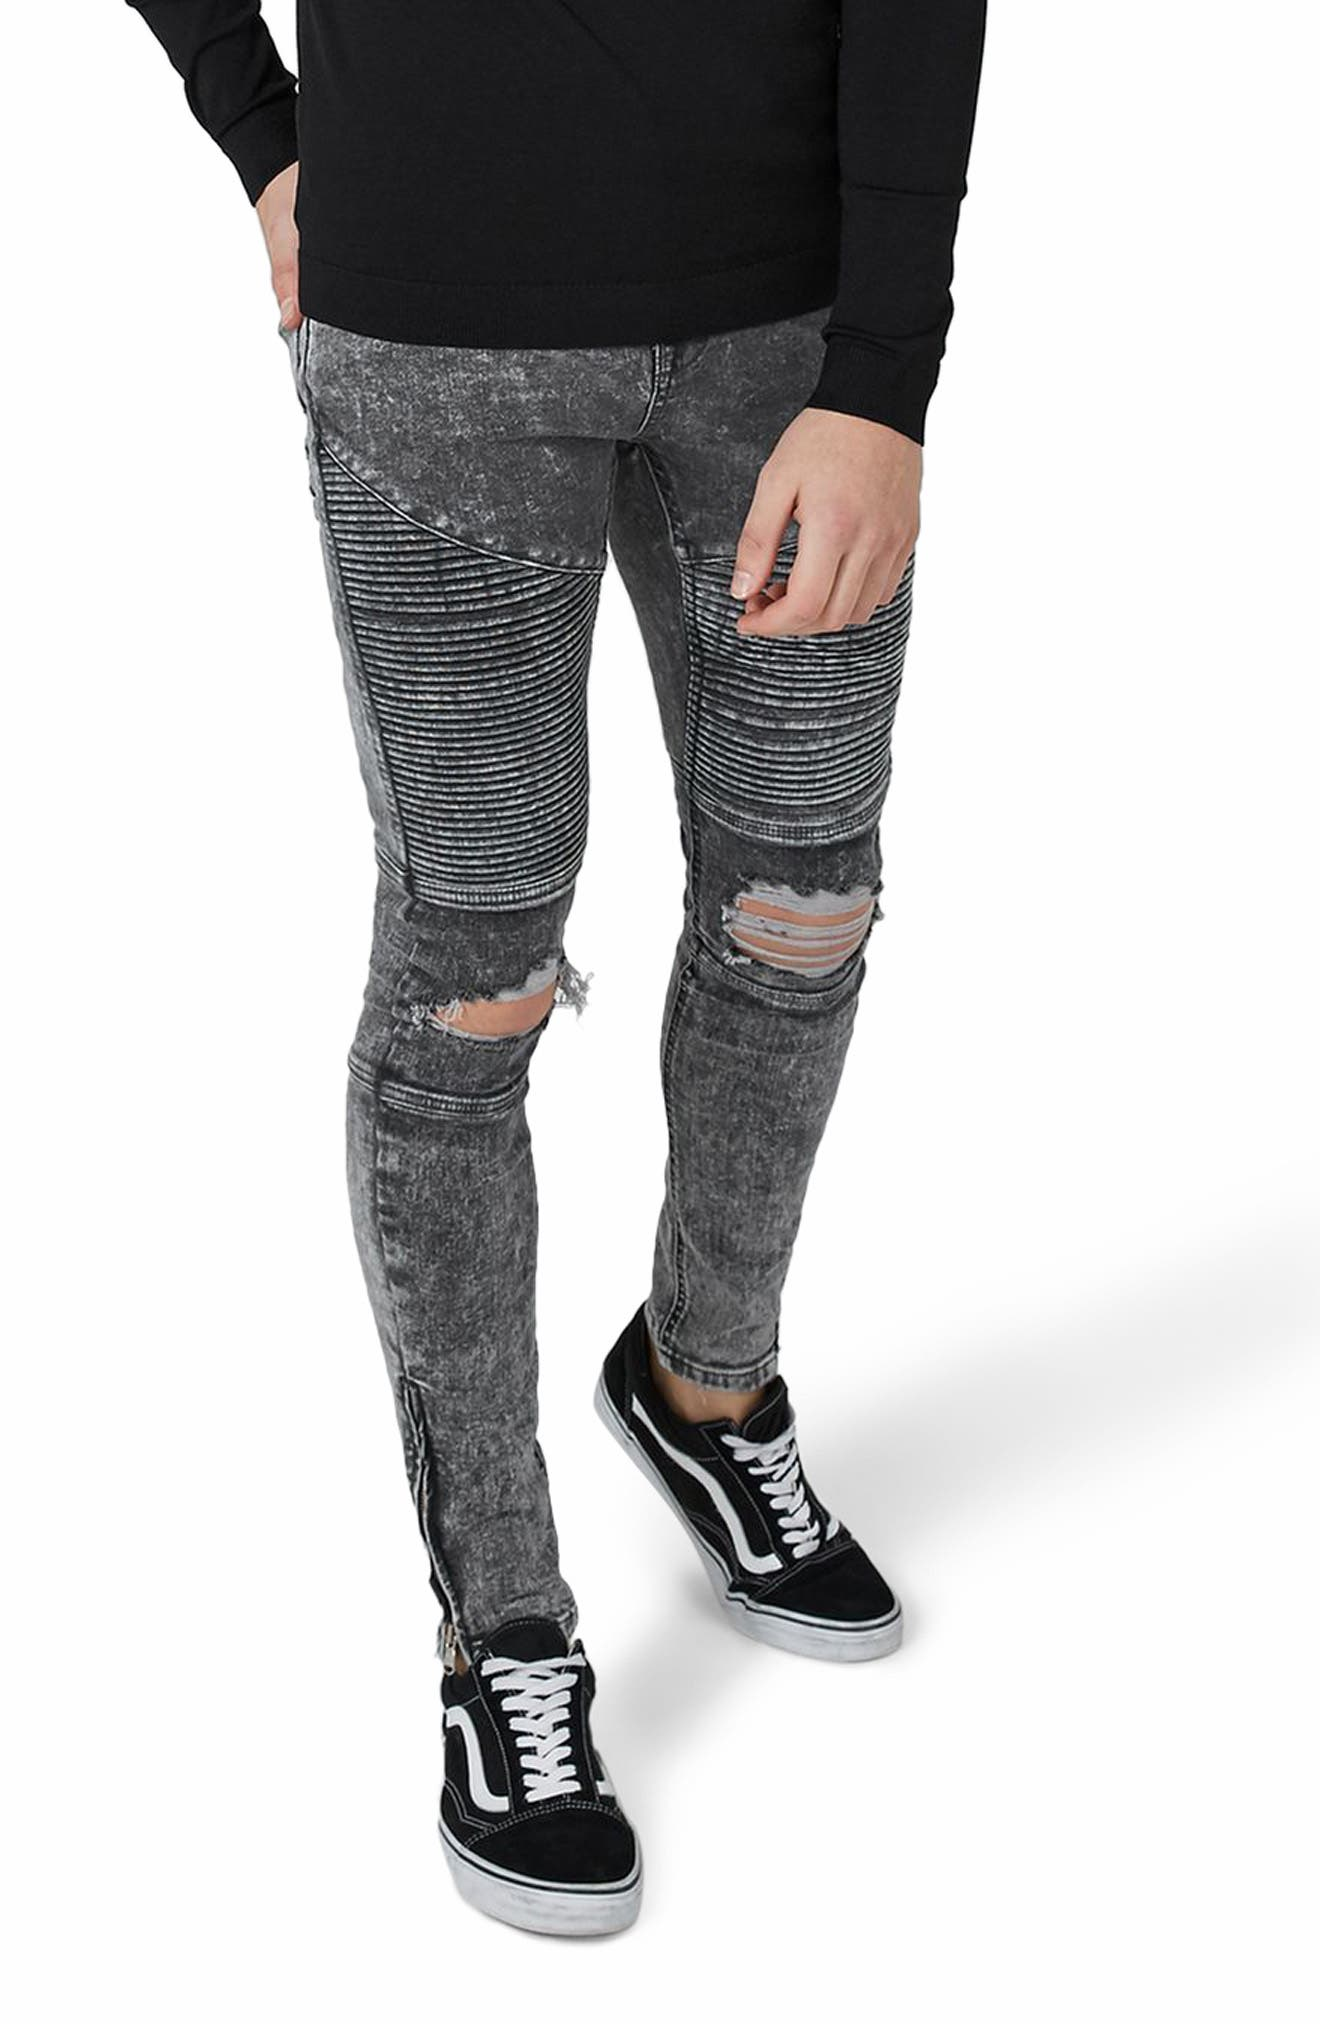 Acid Wash Spray-On Biker Jeans,                             Main thumbnail 1, color,                             020